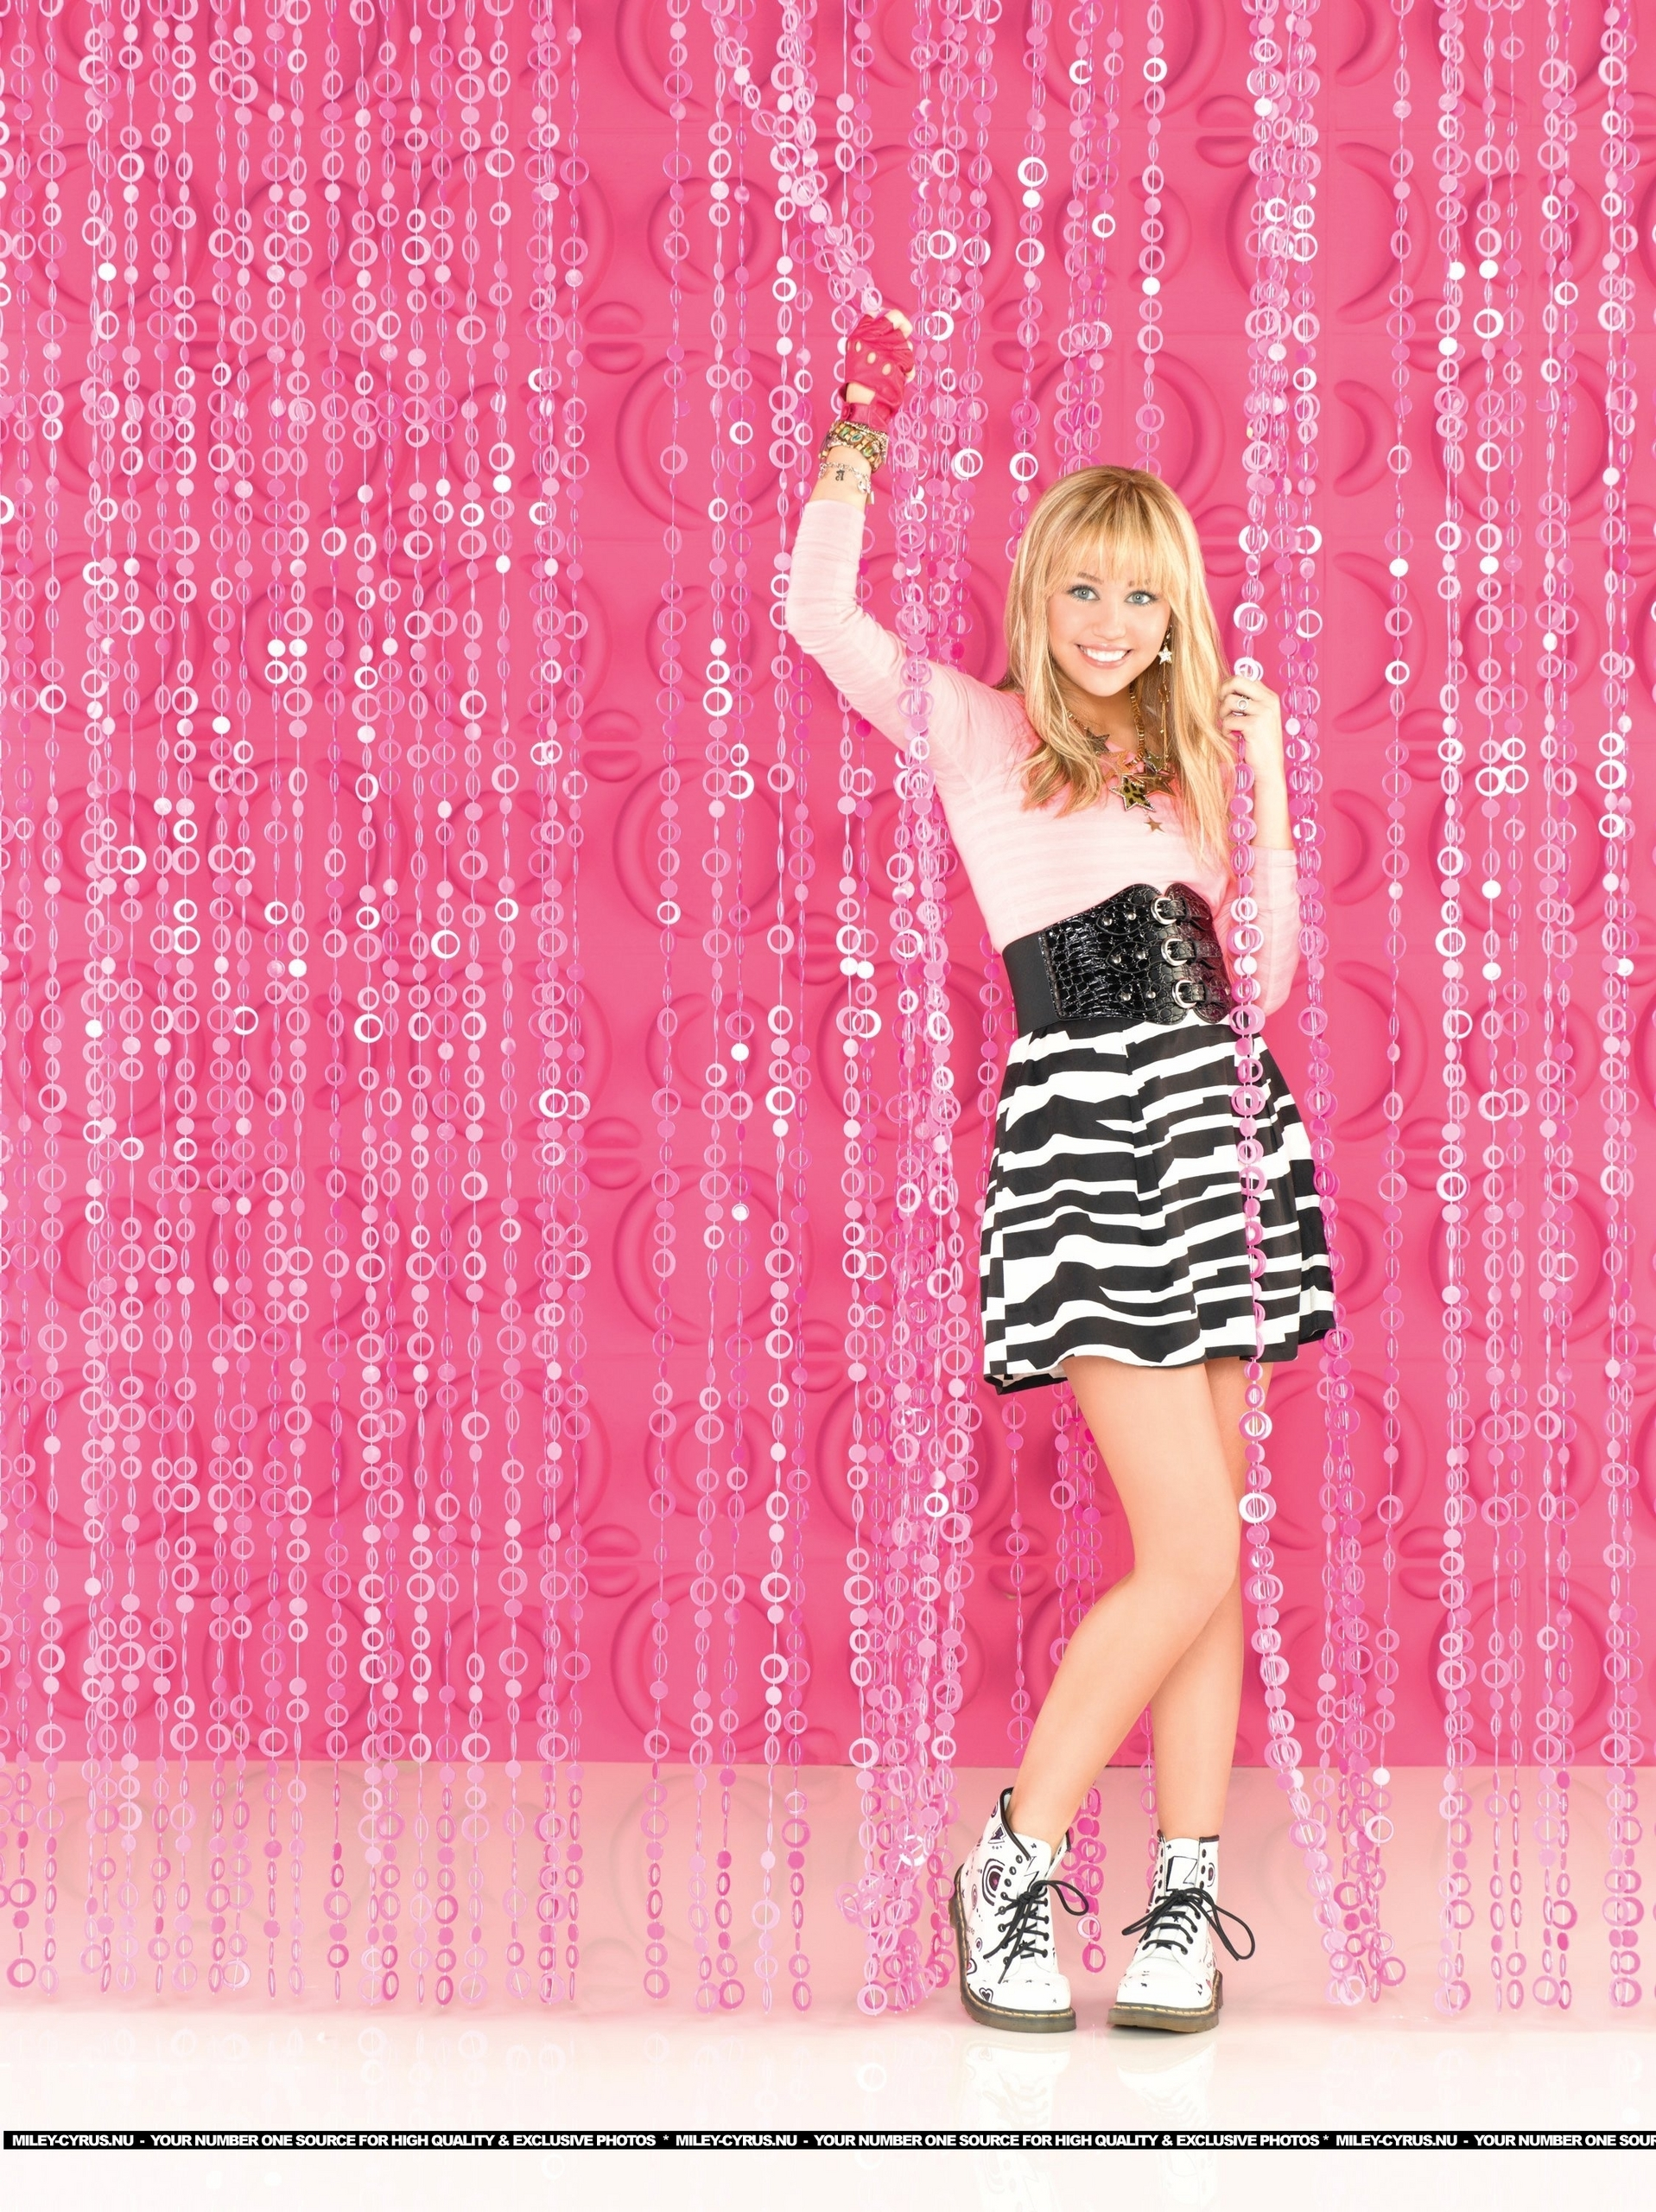 Hannah montana releases season 4 promo pictures to pin on pinterest